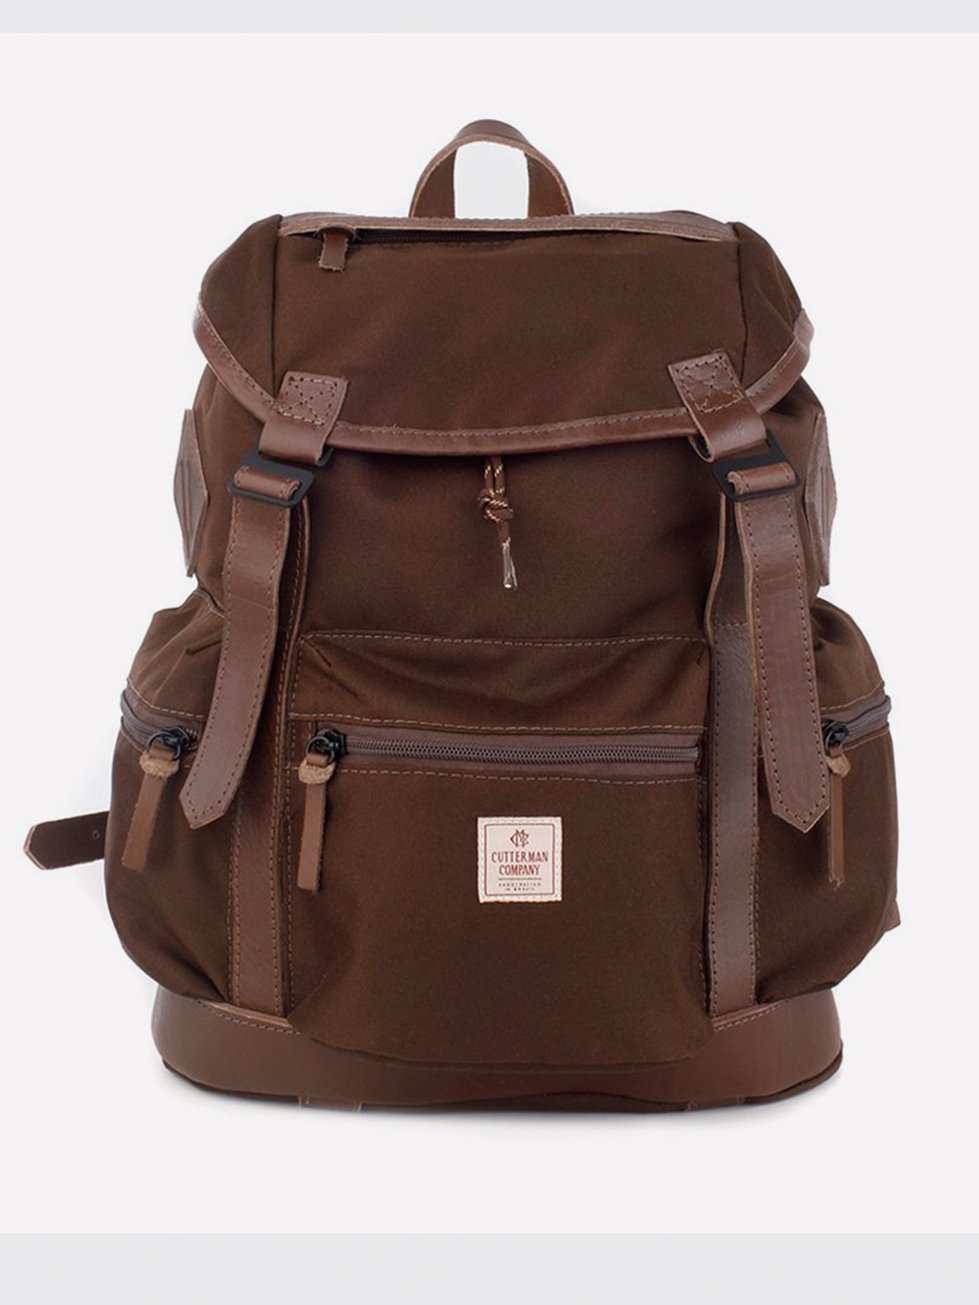 Foto do Mochila Cutterman Co. PORTER - Brown